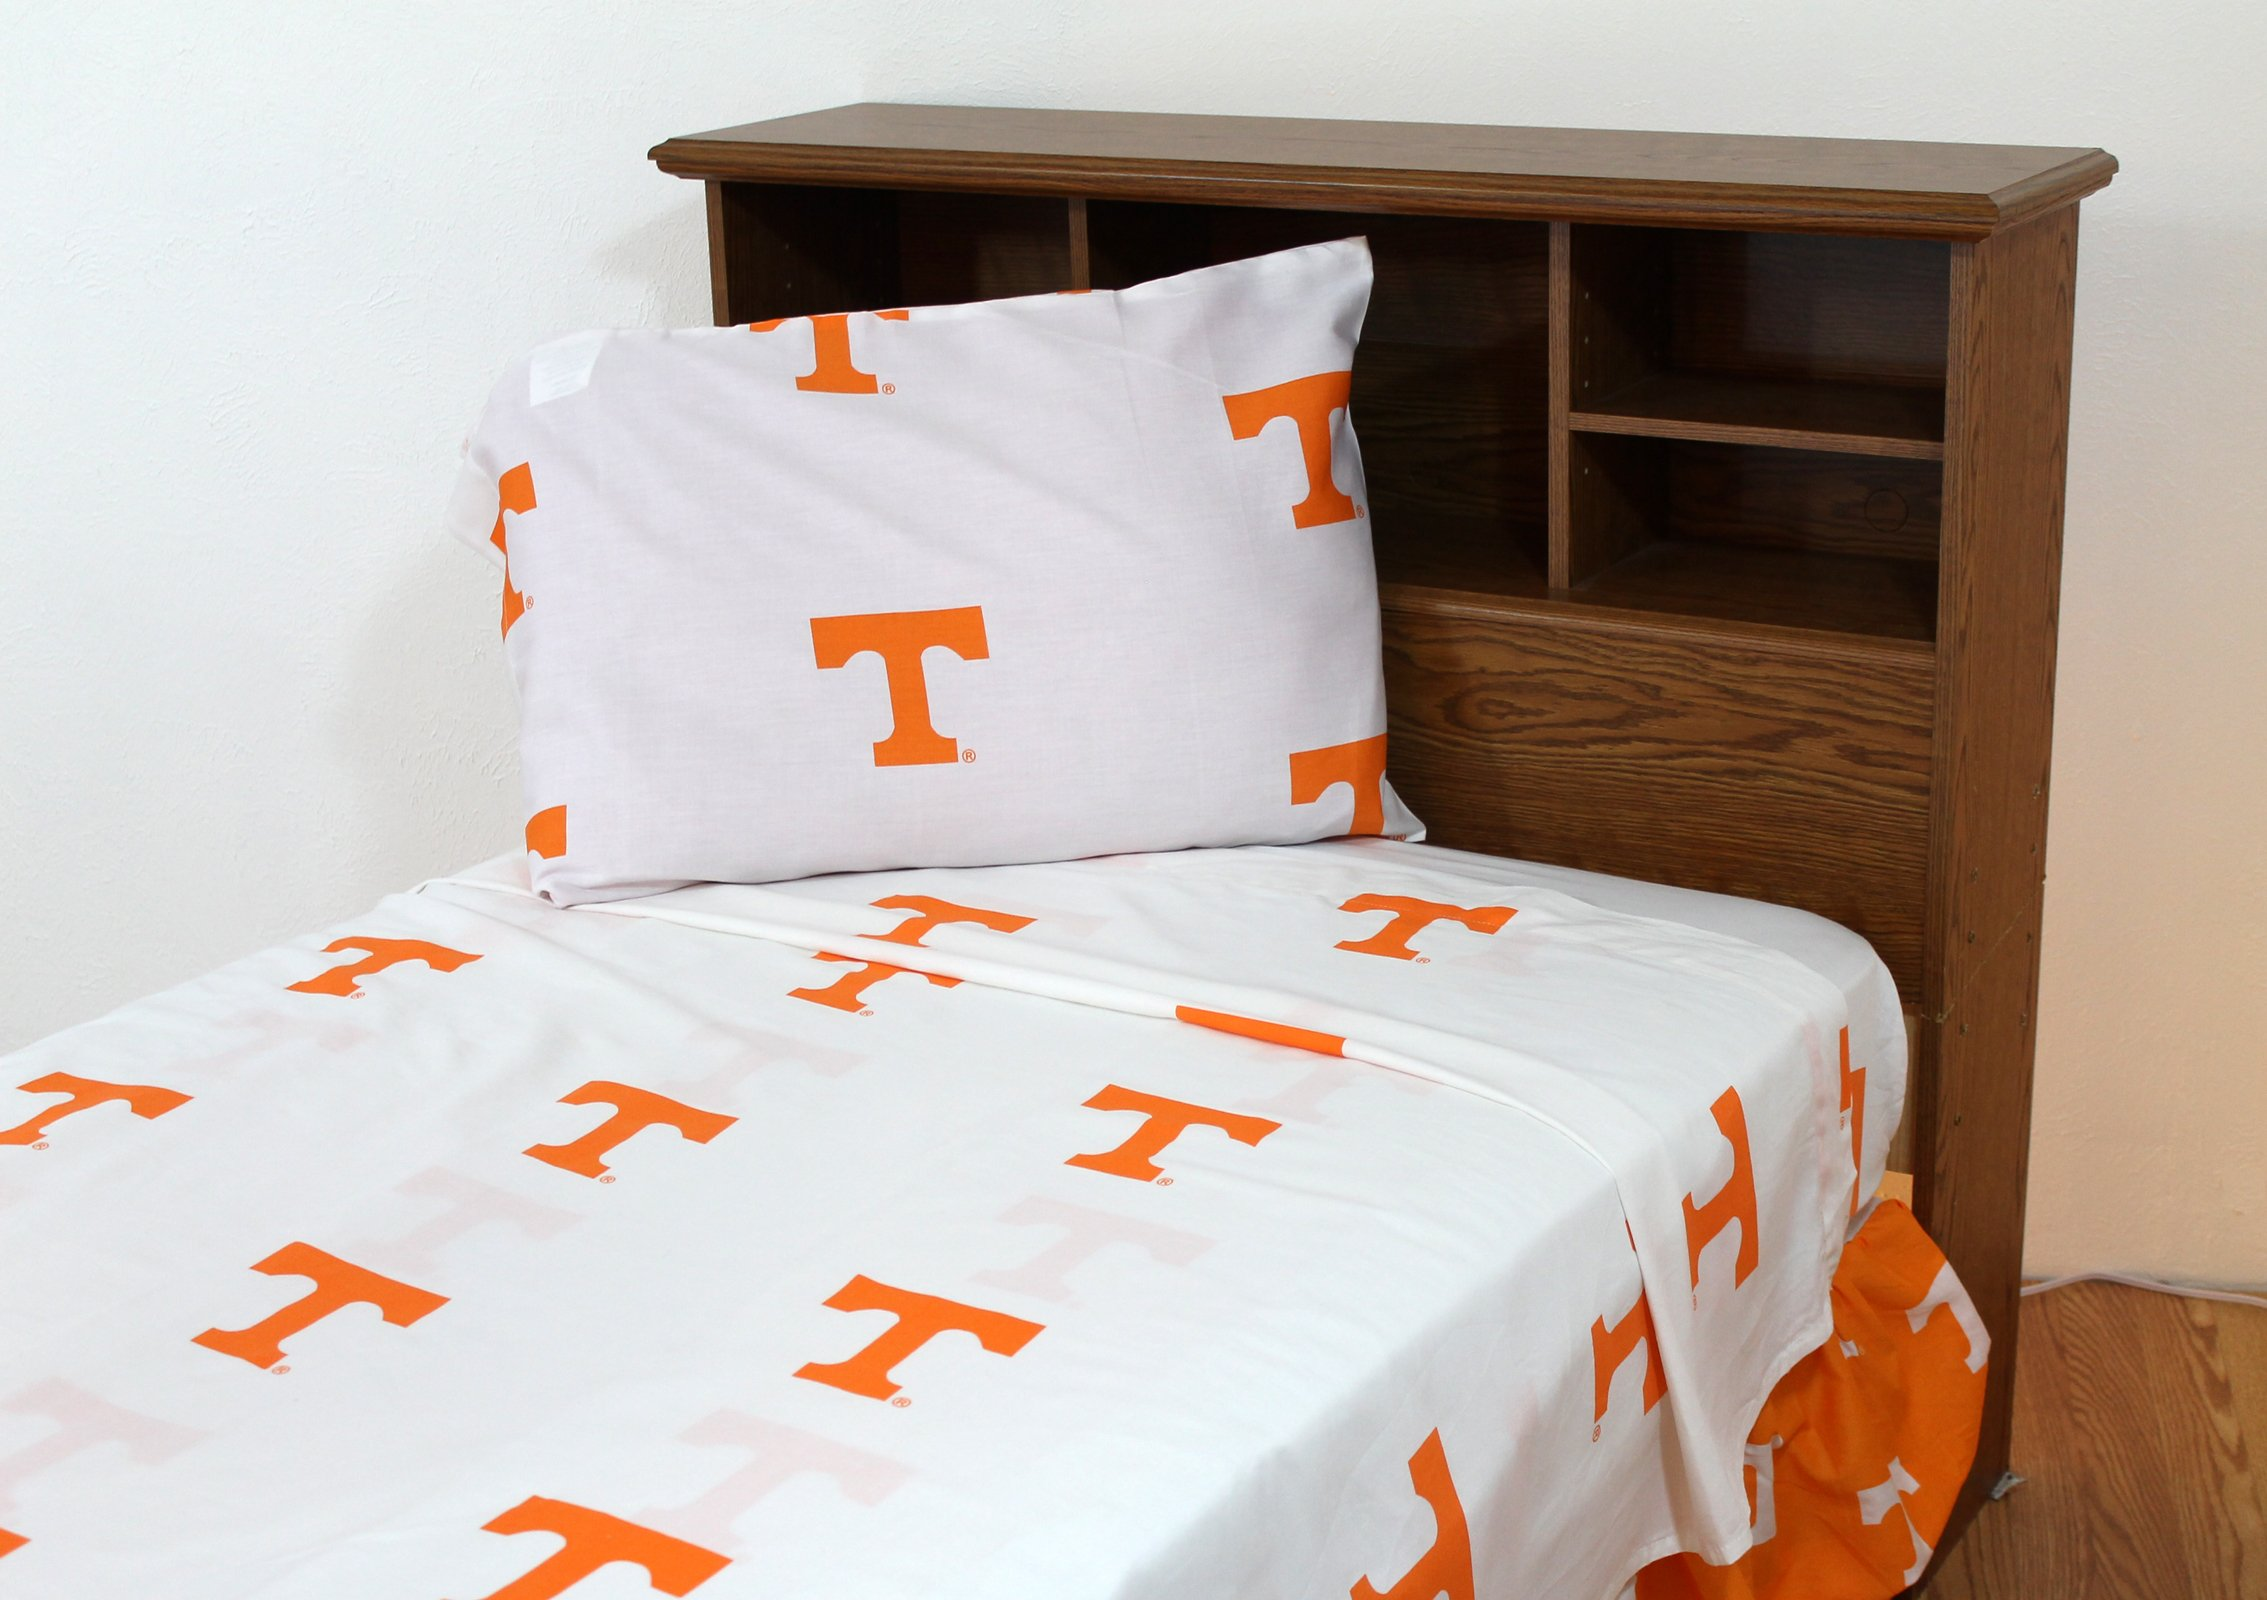 College Covers Tennessee Volunteers Printed Sheet Set - King - White by College Covers